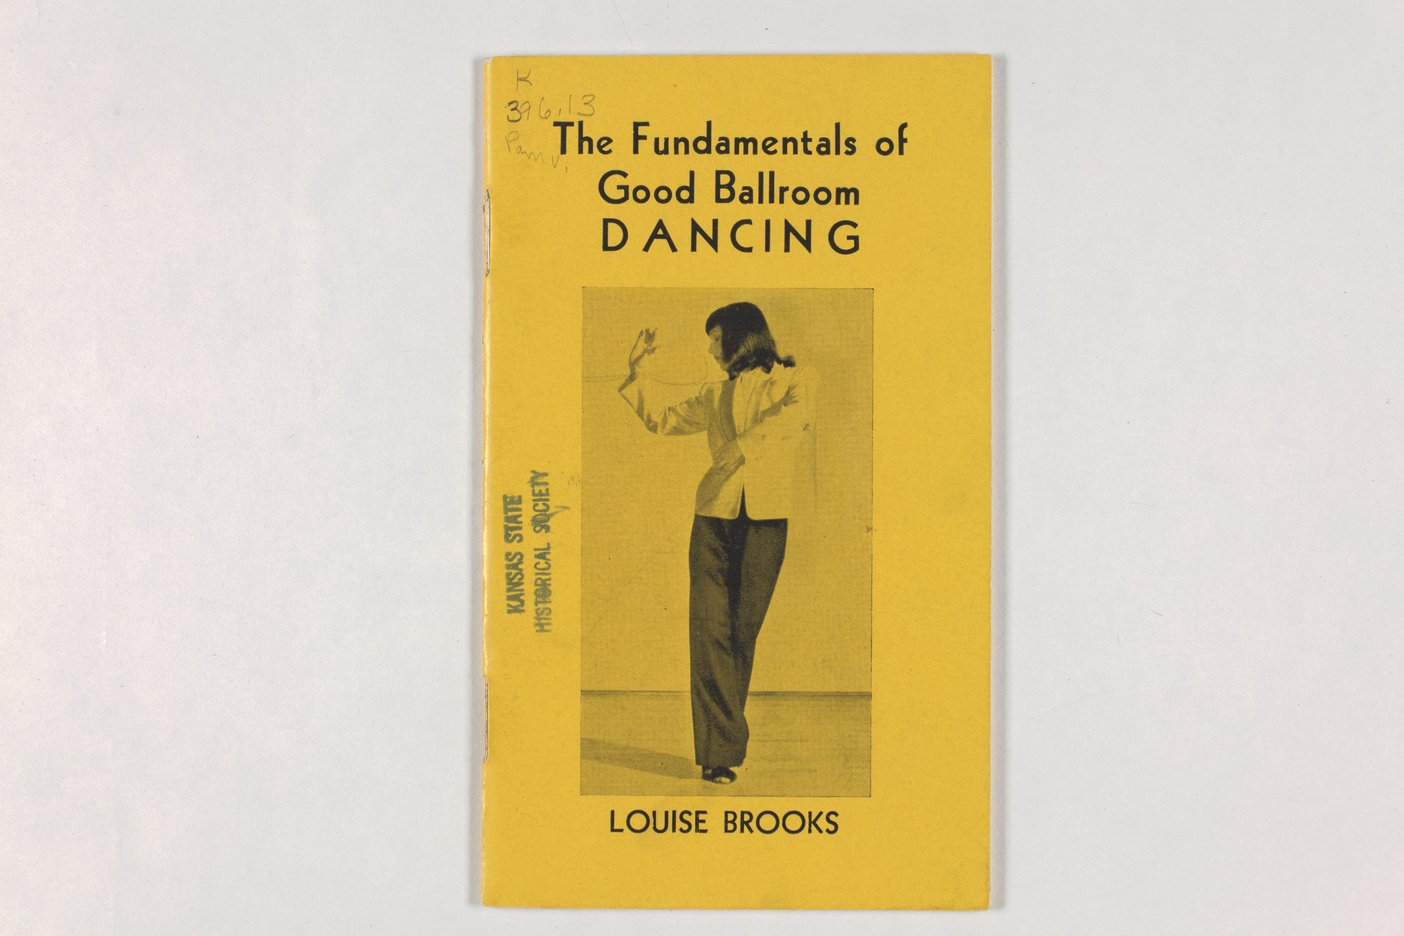 The fundamentals of good ballroom dancing - Front cover